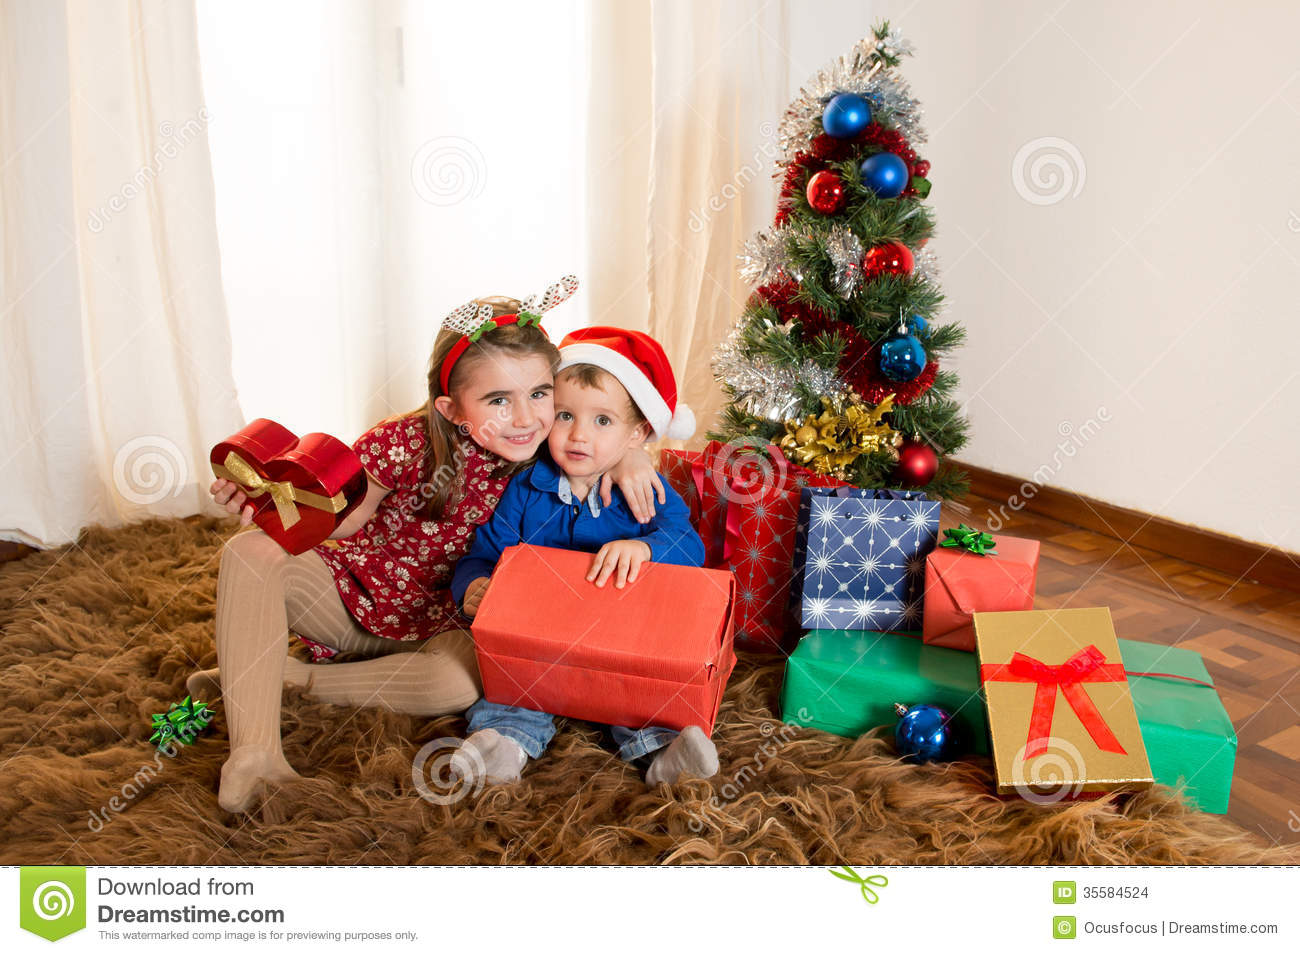 Little Kids On Rug Opening Christmas Presents Stock Images - Image ...